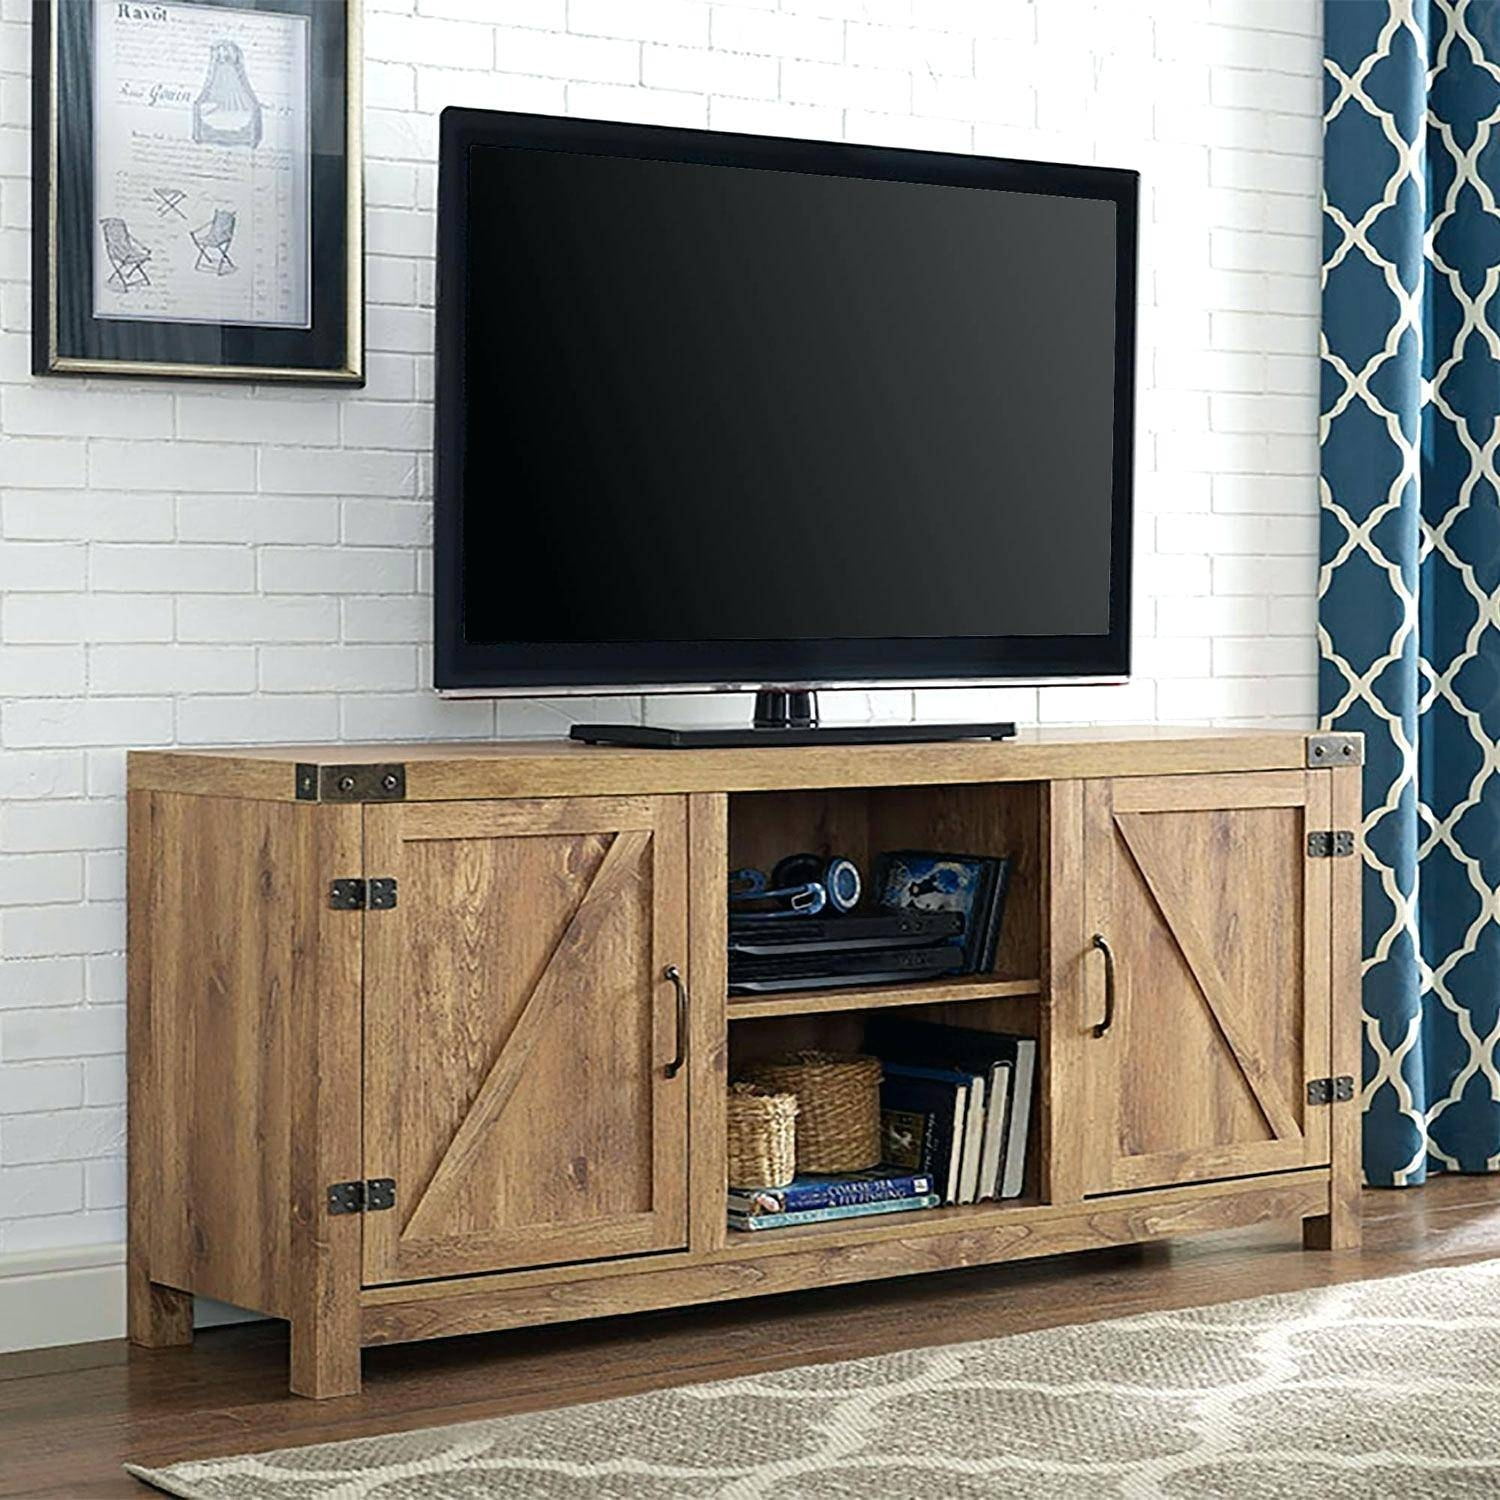 Tv Stand: Superb 38 Inch Tv Stand For Room Ideas (View 14 of 15)